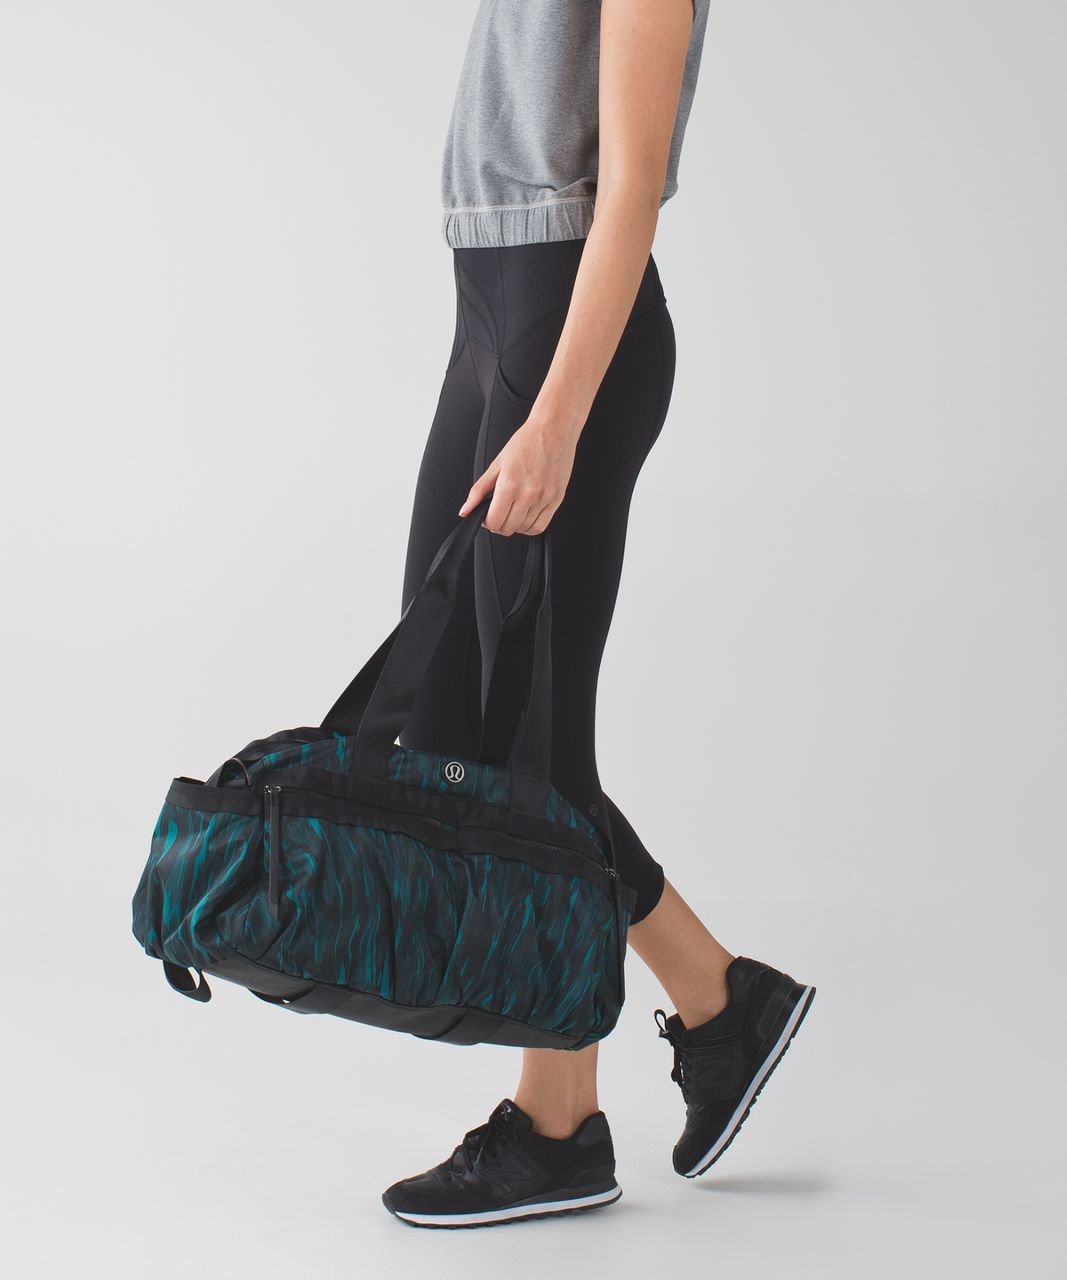 958938aca9c Lululemon Gym To Win Duffel - Painted Animal Forage Teal Dark Fuel / Black